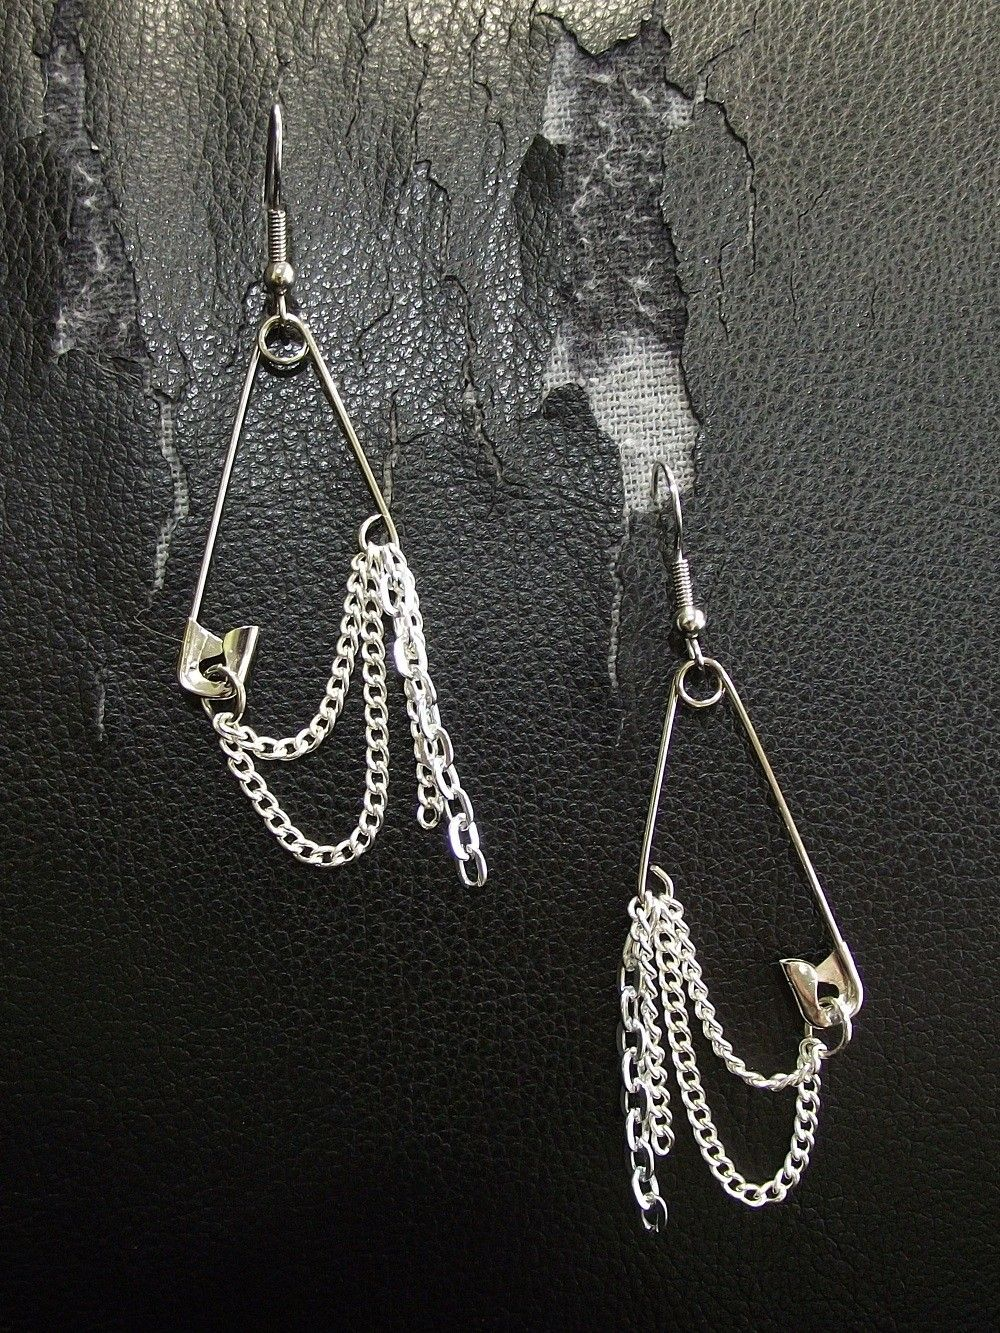 Silver And Cold Safety Pin Earrings Pinterest